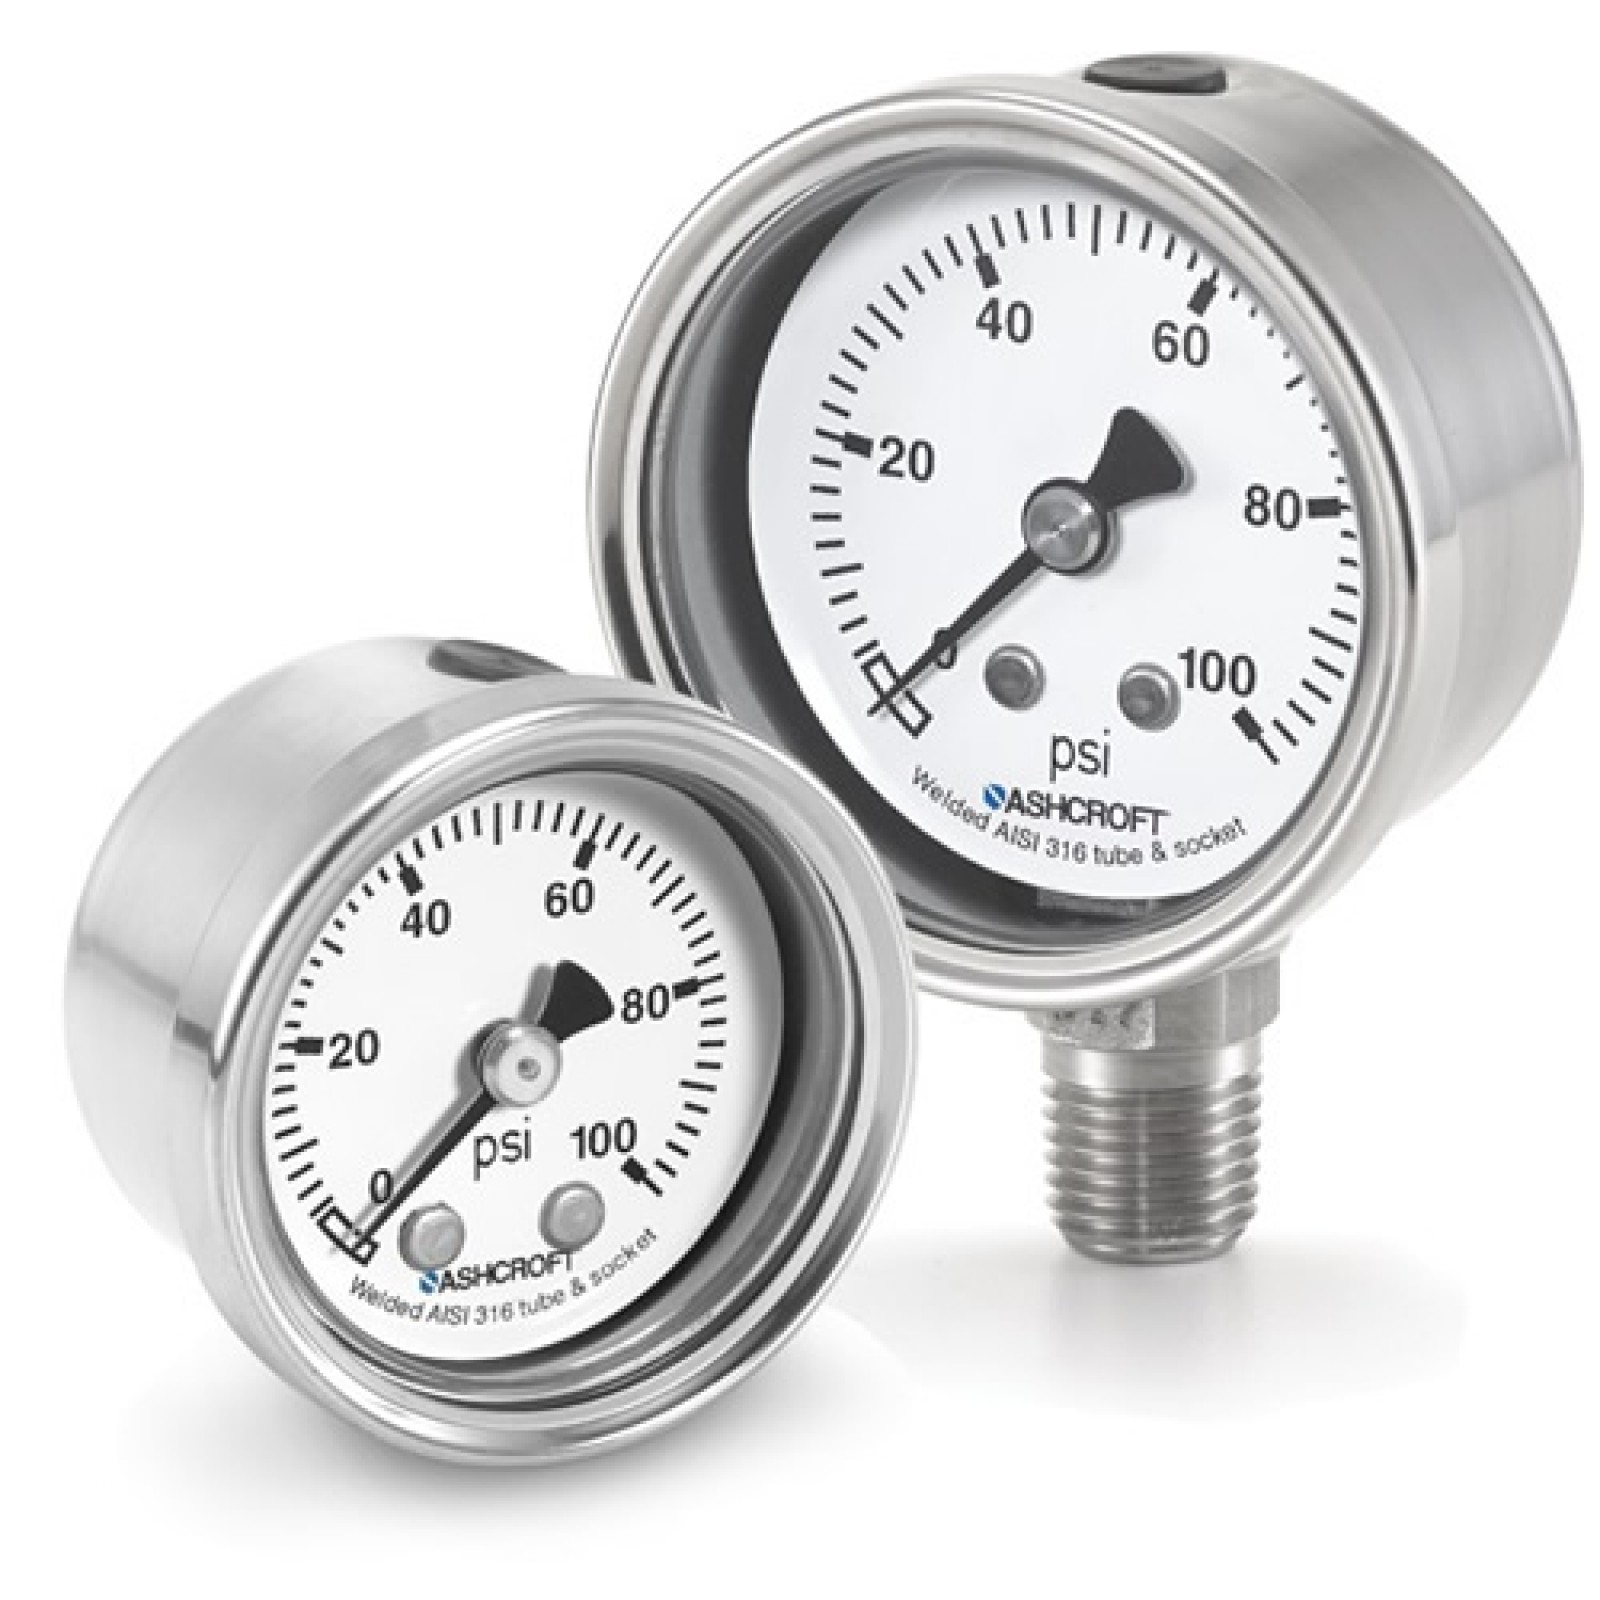 "63 1008S 02L XLL 160#/KP - Pressure Gauge, 63mm stainless 1/4"" NPT Lower conn & Case, Plus Performance 0/160 psi"